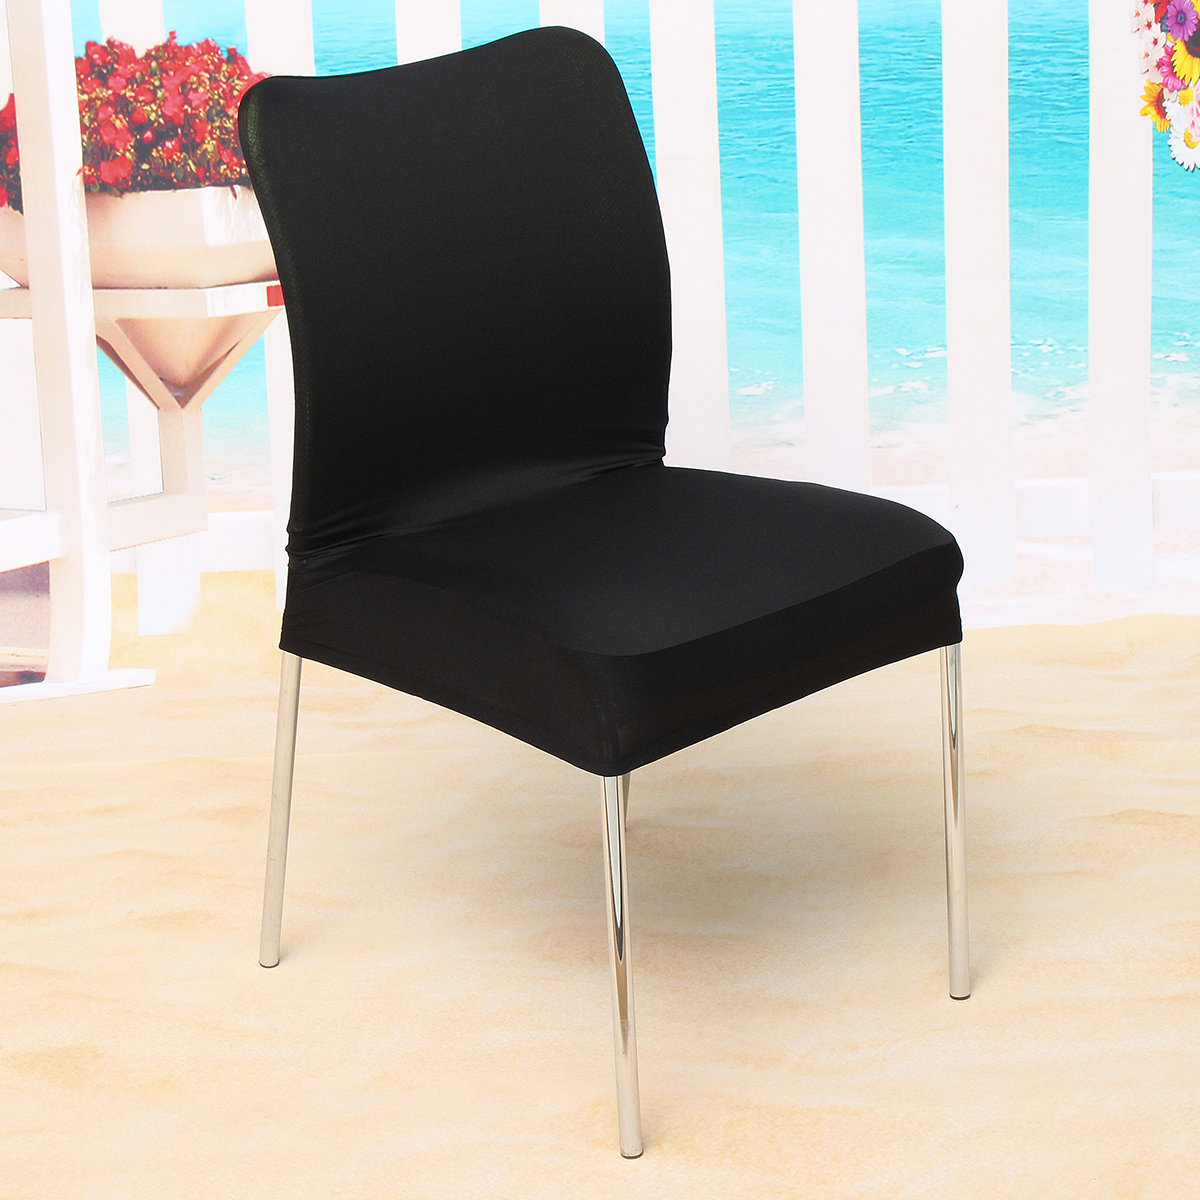 HD wallpapers dining chair seat covers malaysia